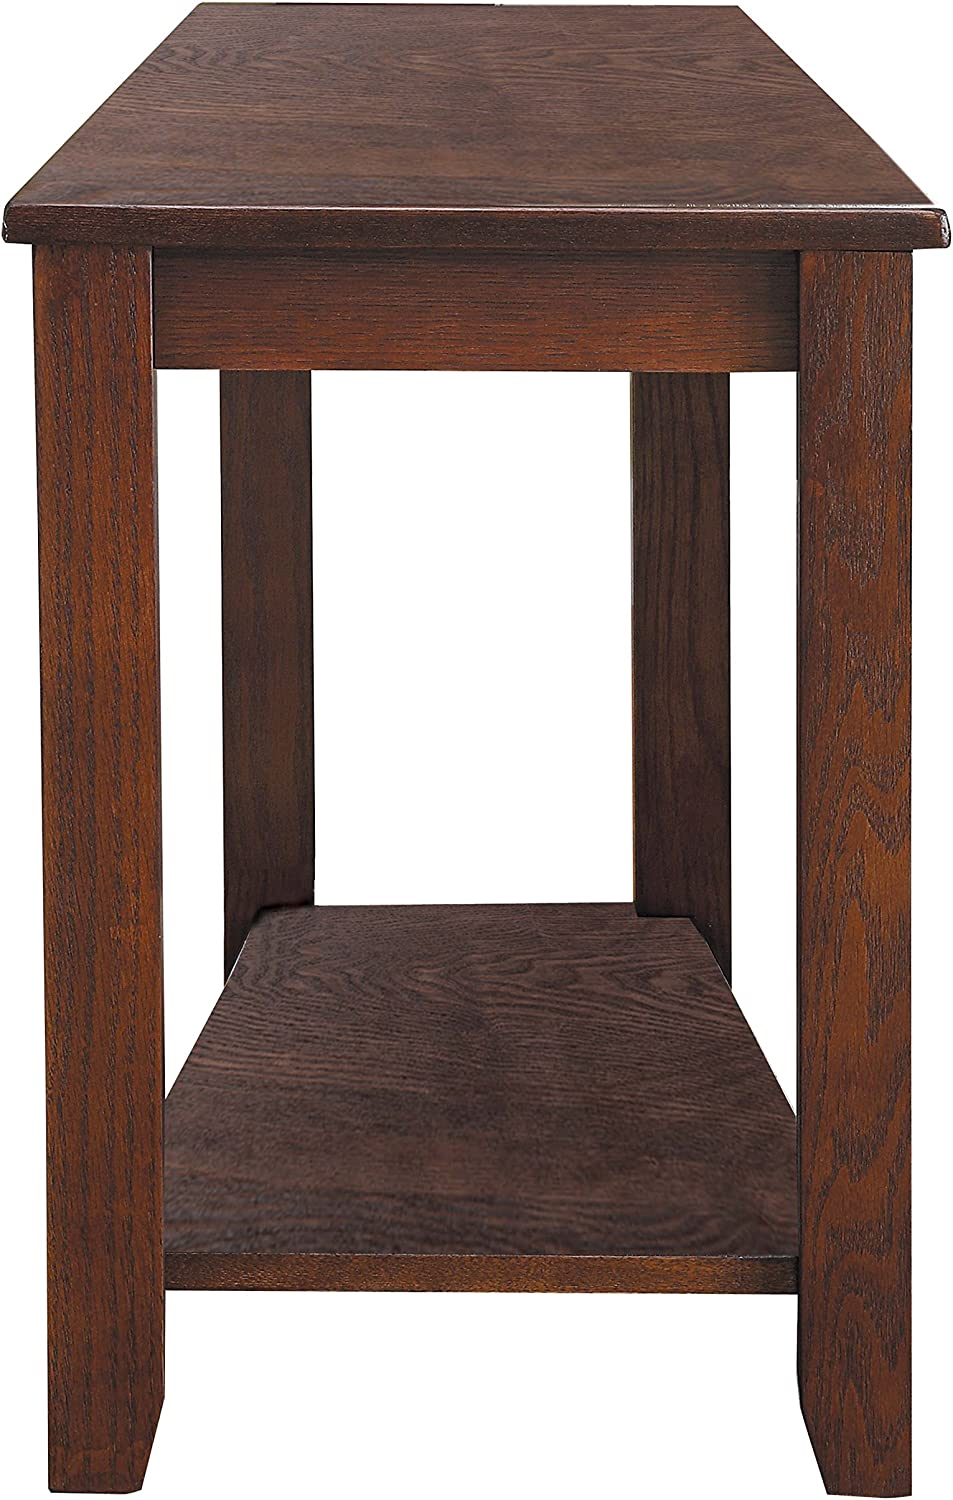 Homelegance Elwell Wedged Chairside Table Table, Espresso